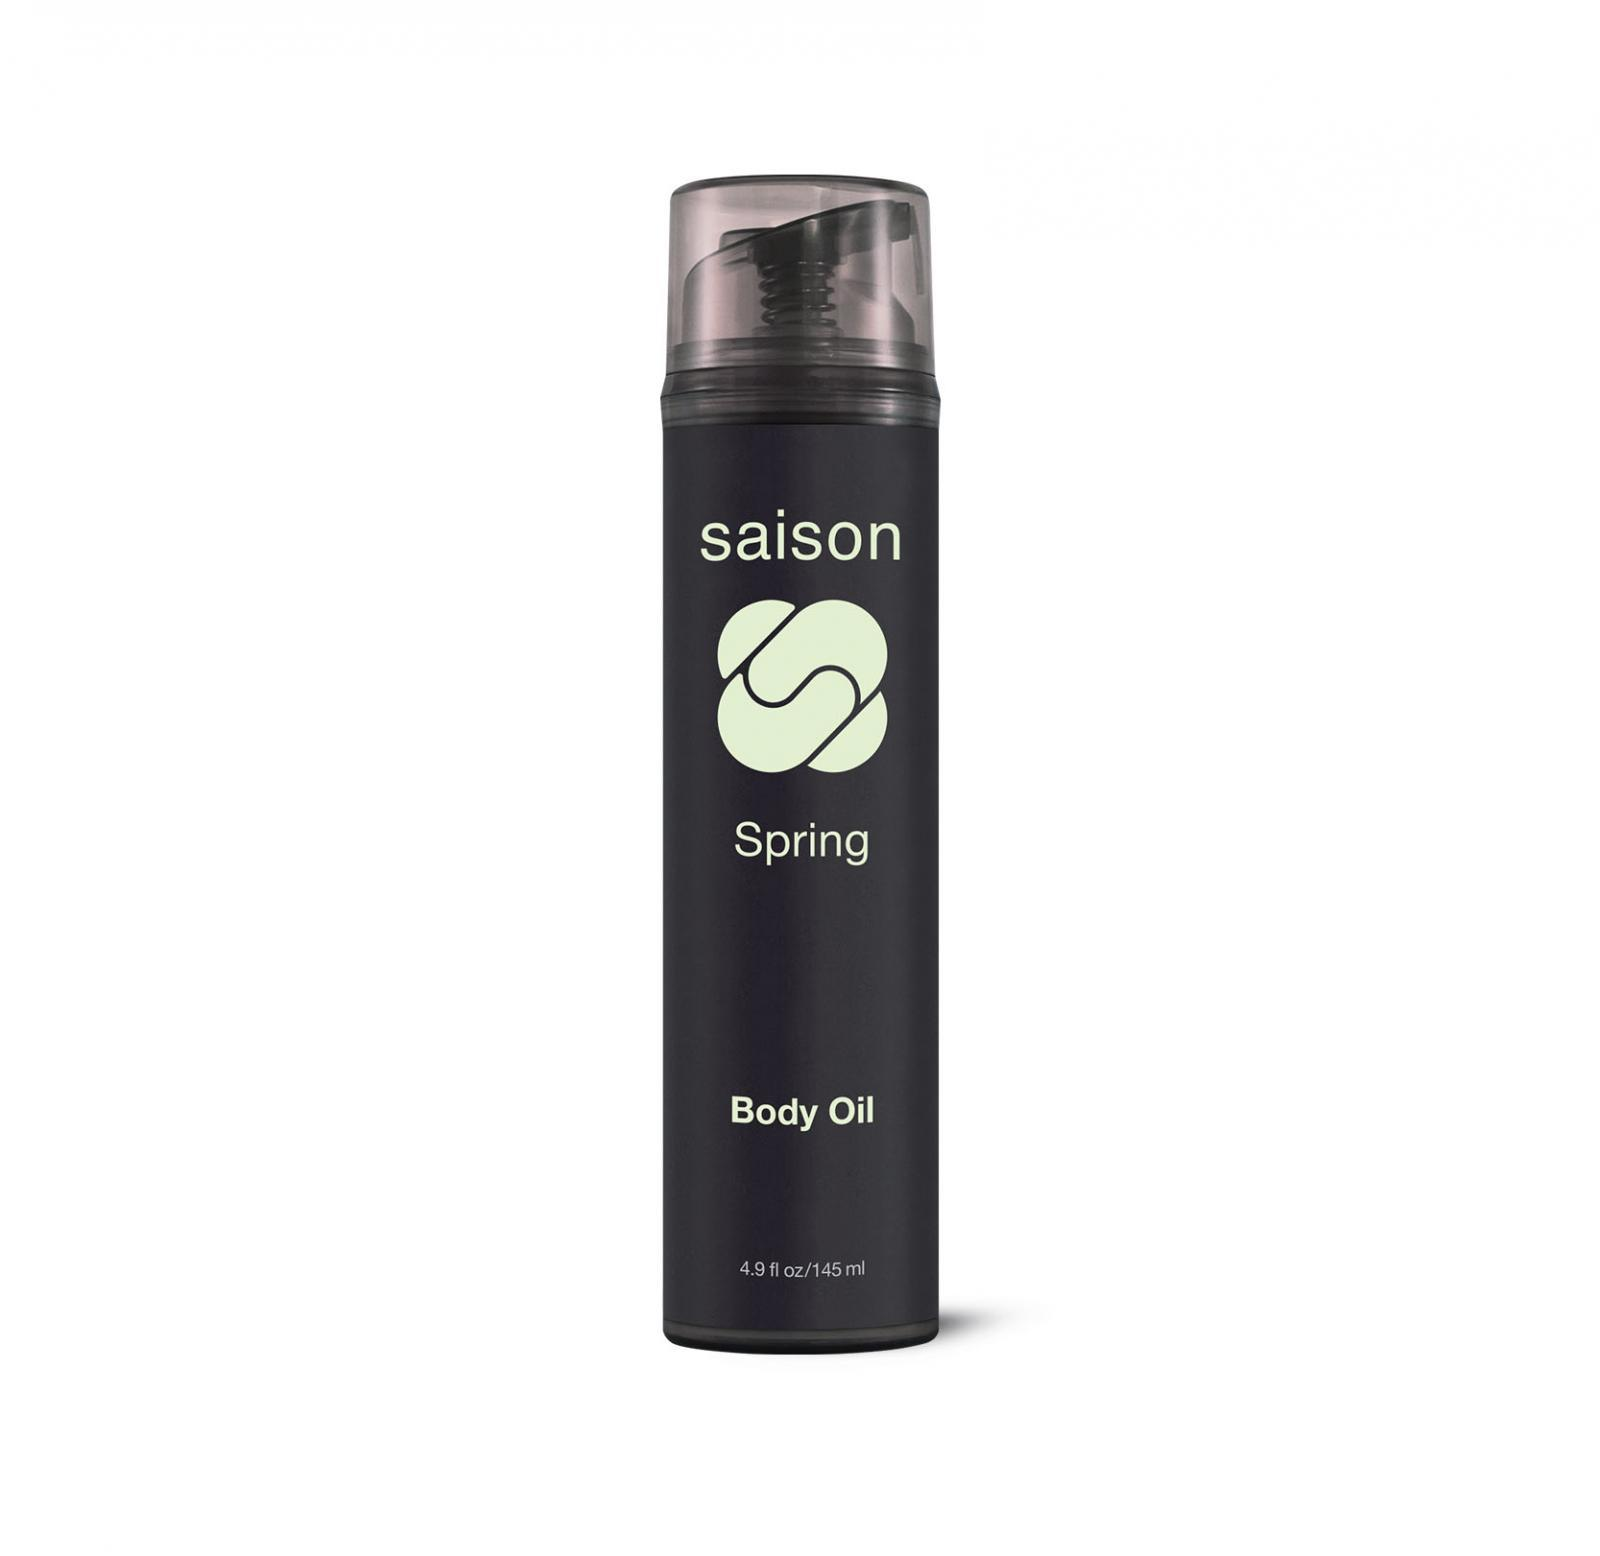 Saison Spring Body Oil